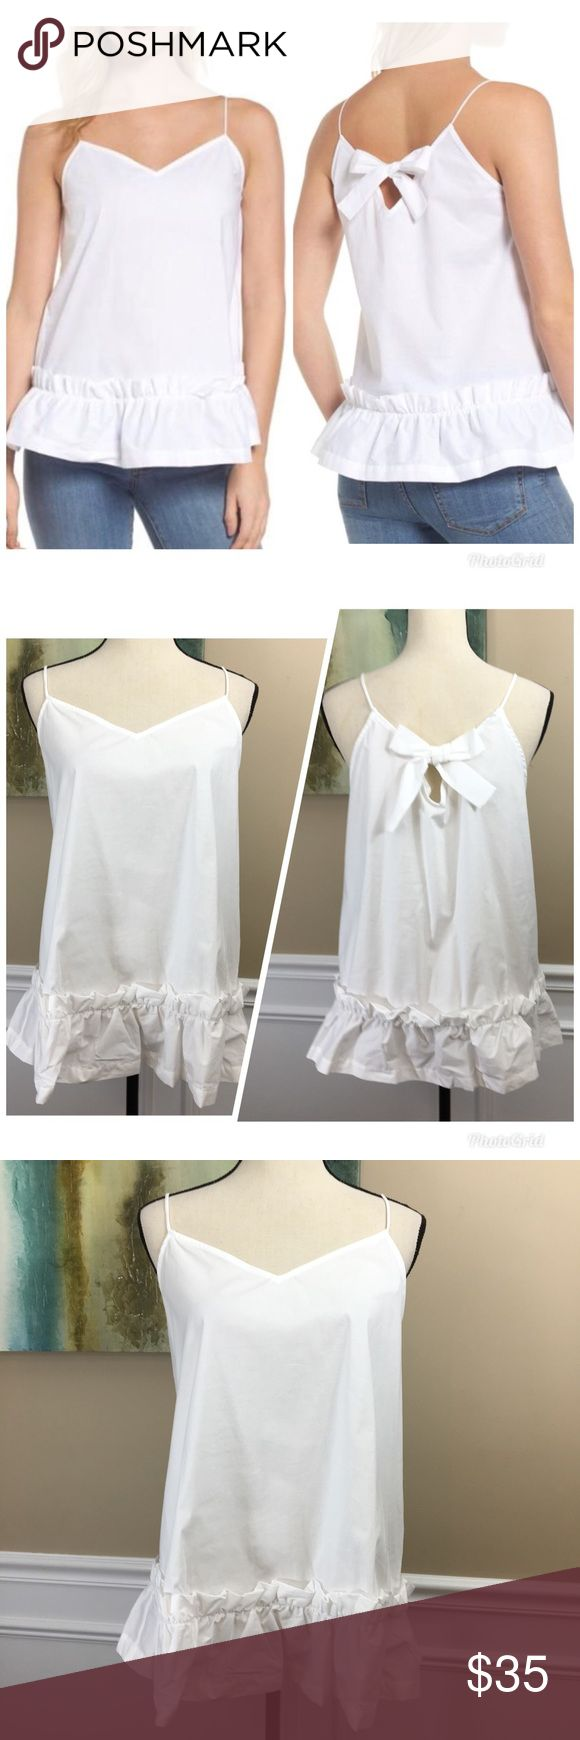 """PLEIONE Bow Back Tank Top XL NEW PLEIONE Bow Back Tank Top (C23) New With Tags White A camisole-style poplin tank exudes girly charm with a sweet bow at the V-back and a ruffle around the hem, - Slips on over head- Spaghetti-strap V-neck- Sleeveless- 97% cotton, 3% spandex Women's SZ XLarge Measurements Laying Flat Under Arm to Under Arm 20.6"""" Adjustable Length 28.6"""" Pleione Tops Tank Tops"""